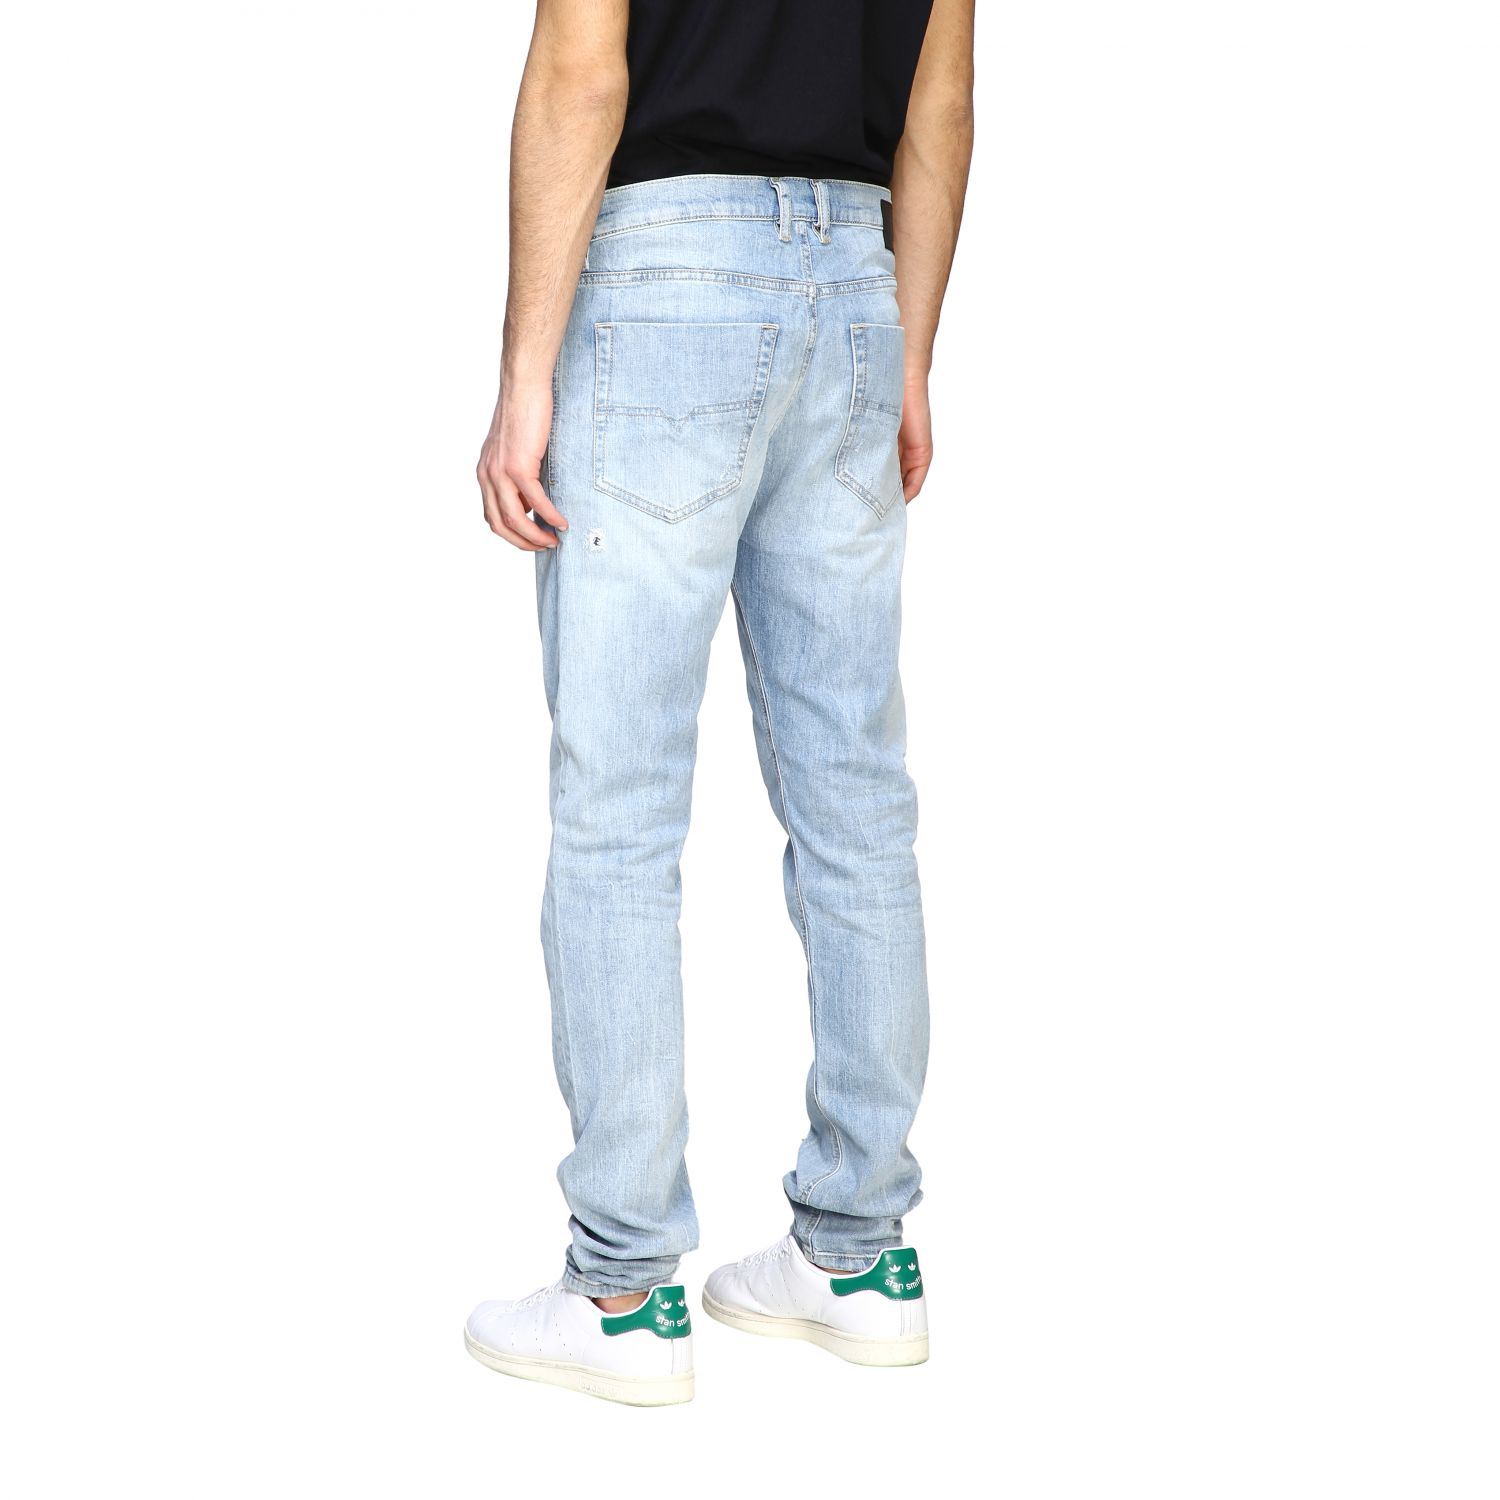 Jeans Diesel: Diesel Tepphar-x Jeans aus Used Stretch-Denim mit normaler Taille stone bleached 3